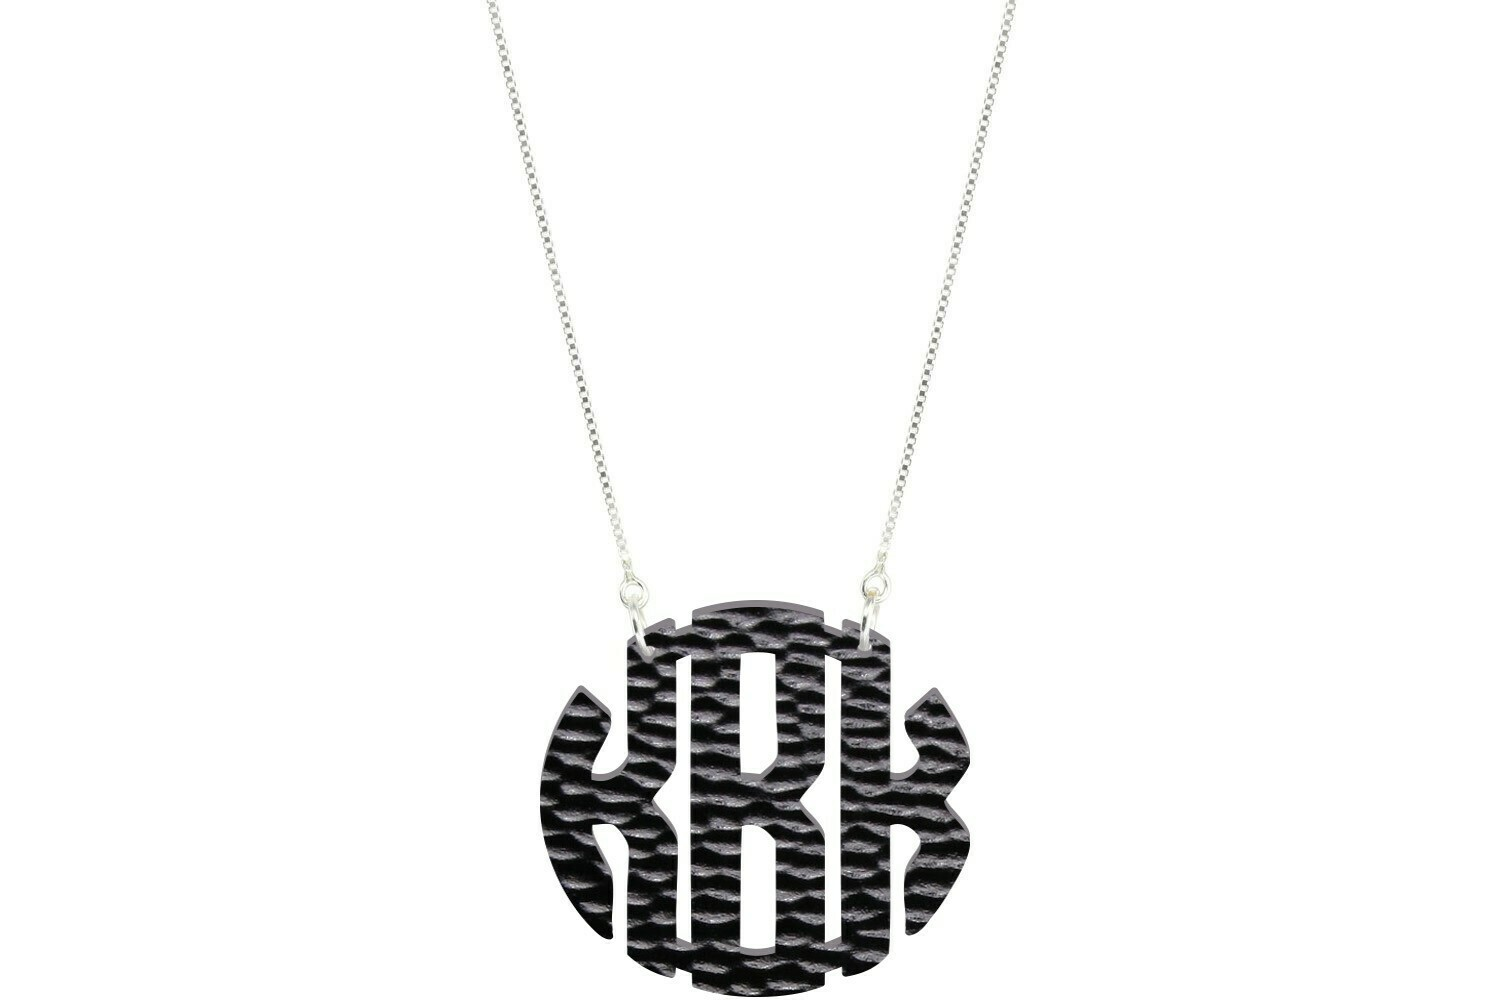 Clean Block Monogram with Duo Necklace